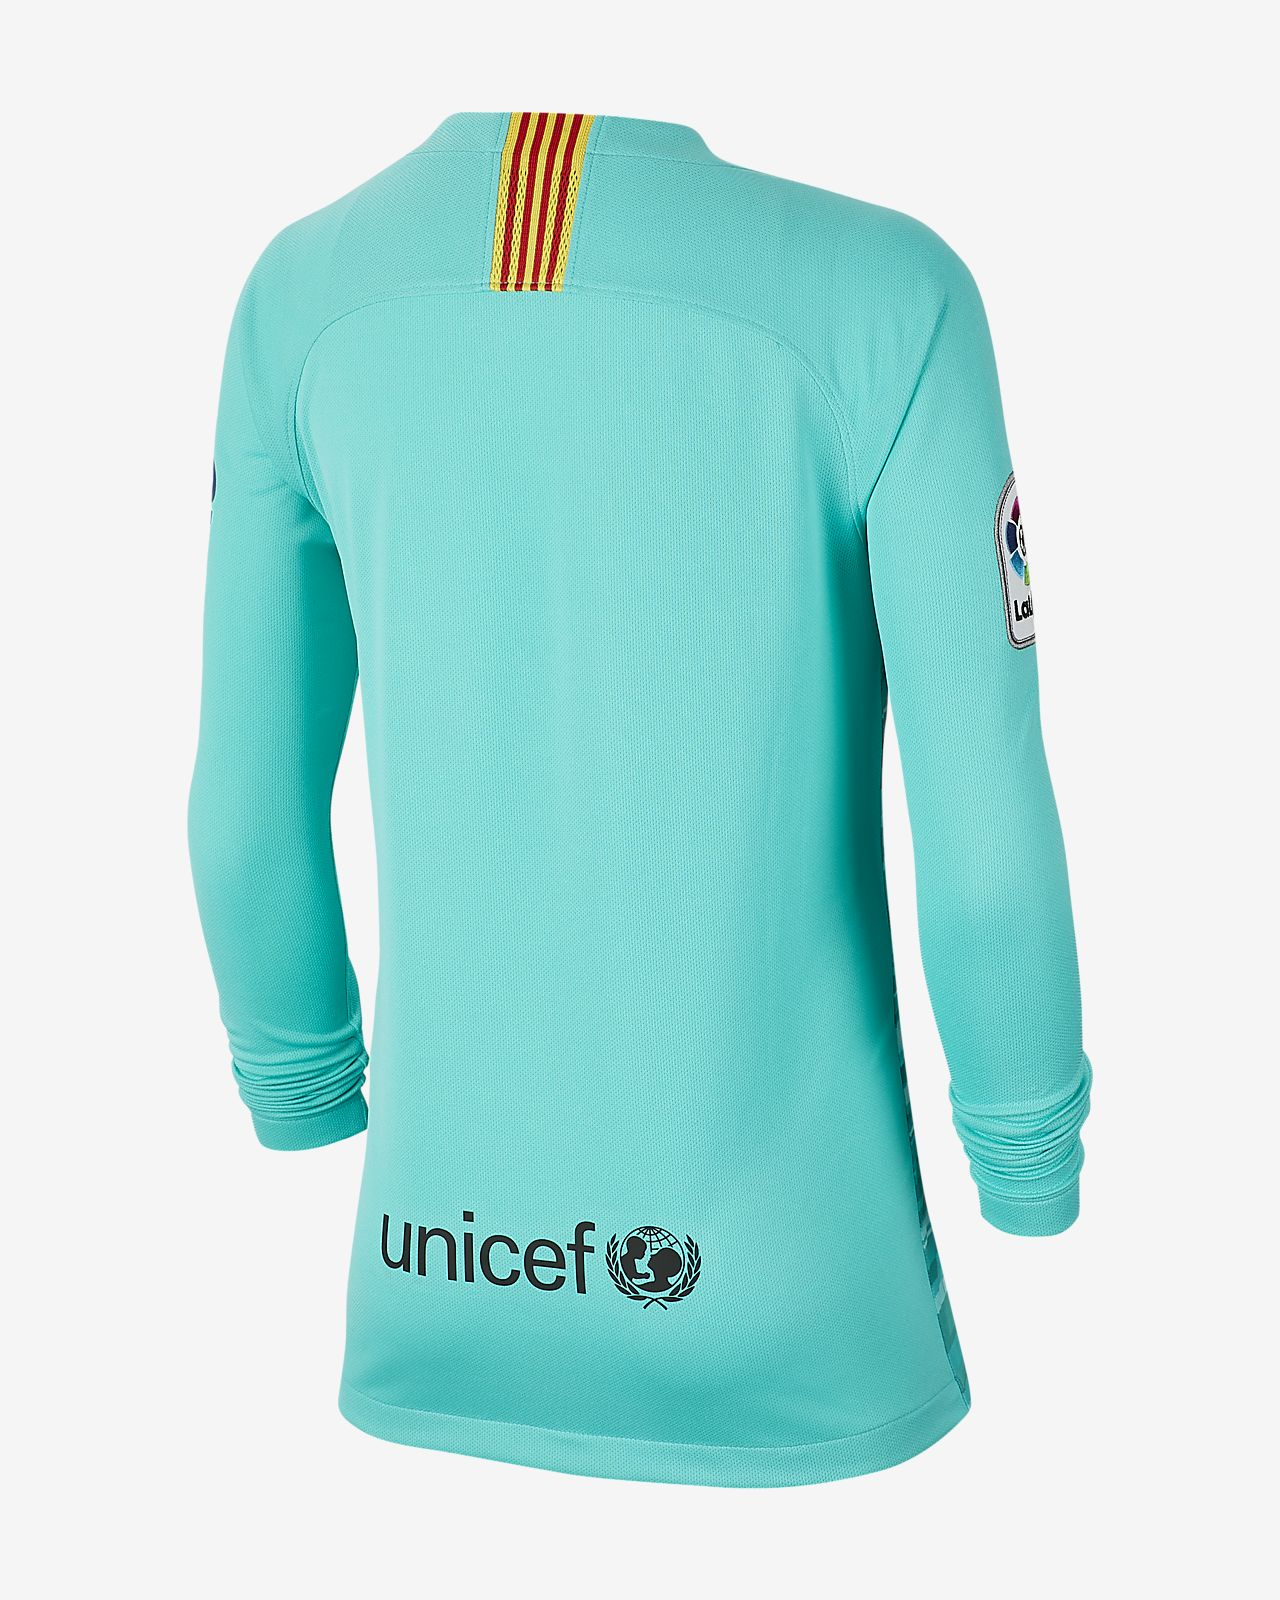 brand new f518c 4d2c1 FC Barcelona 2019/20 Stadium Goalkeeper Older Kids' Football Shirt